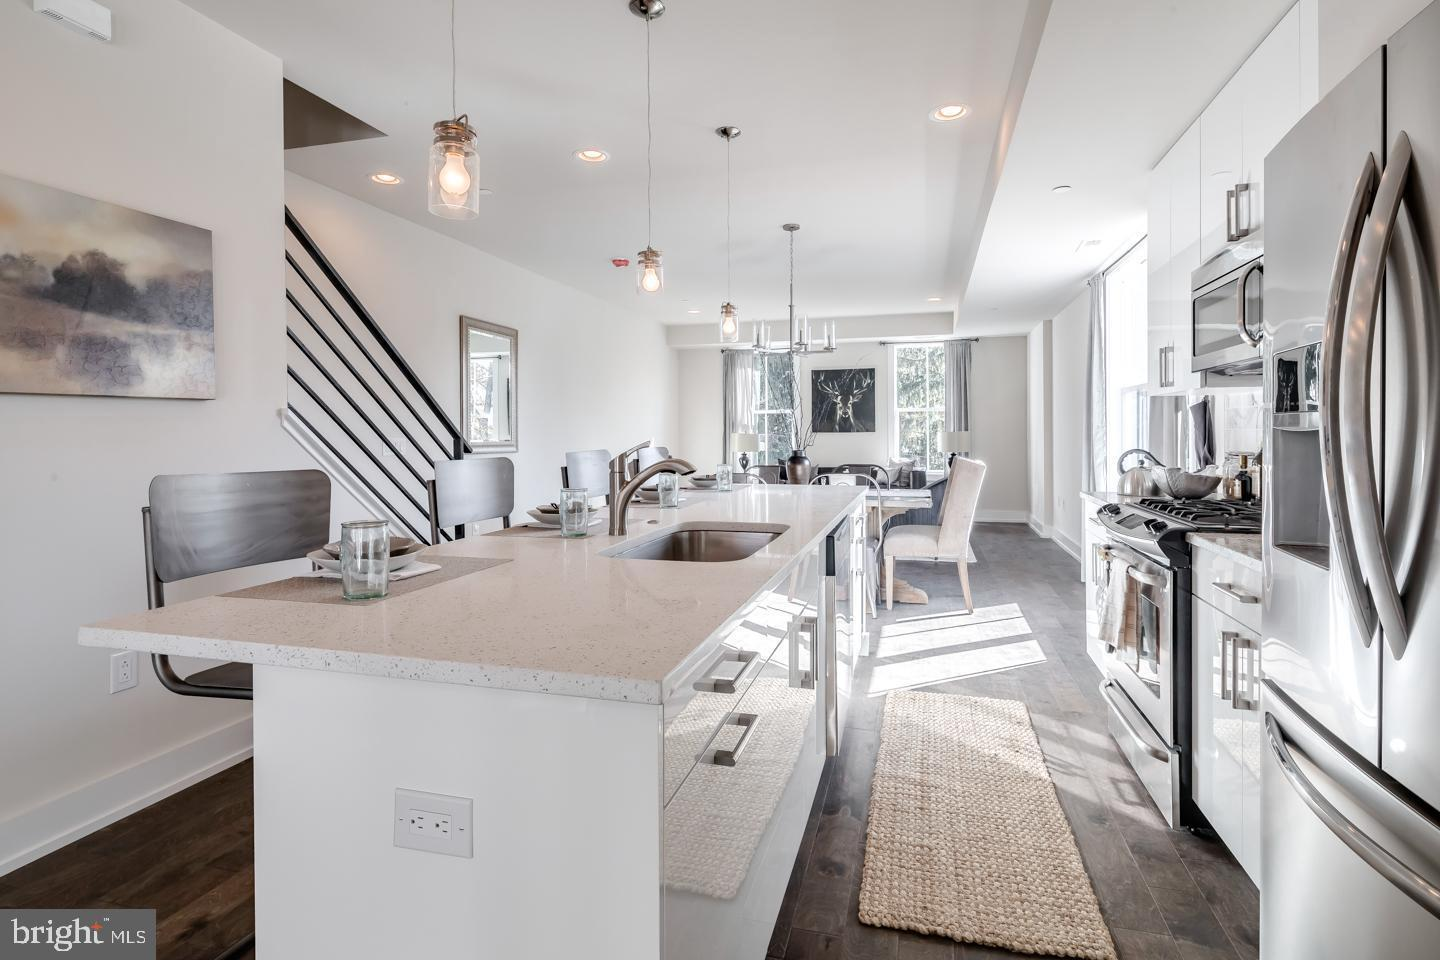 Kitchen featured in the Carriage Homes By PRDC Properties in Philadelphia, PA